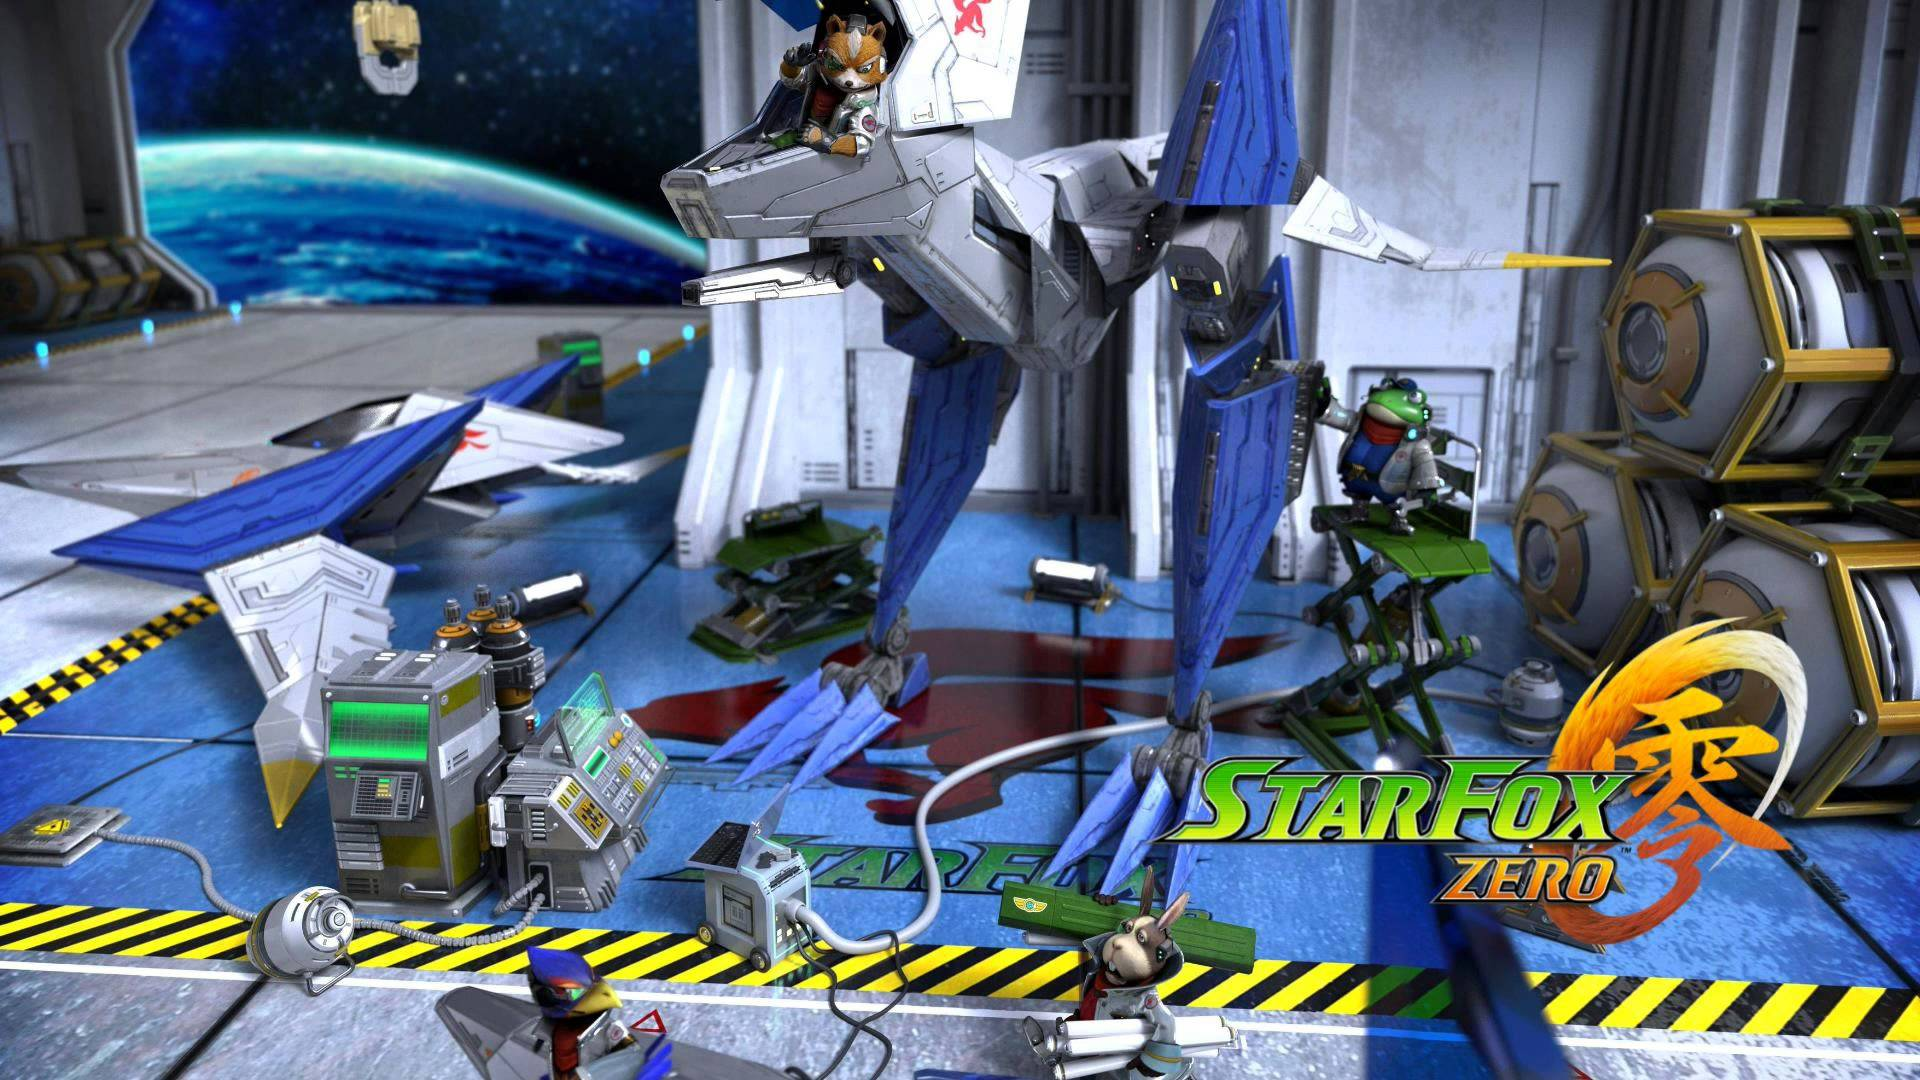 """Star Fox Zero"" Will Have ""Invincible Arwing"" Mode - Invincible Flying Death Machines: Be Very Afraid"